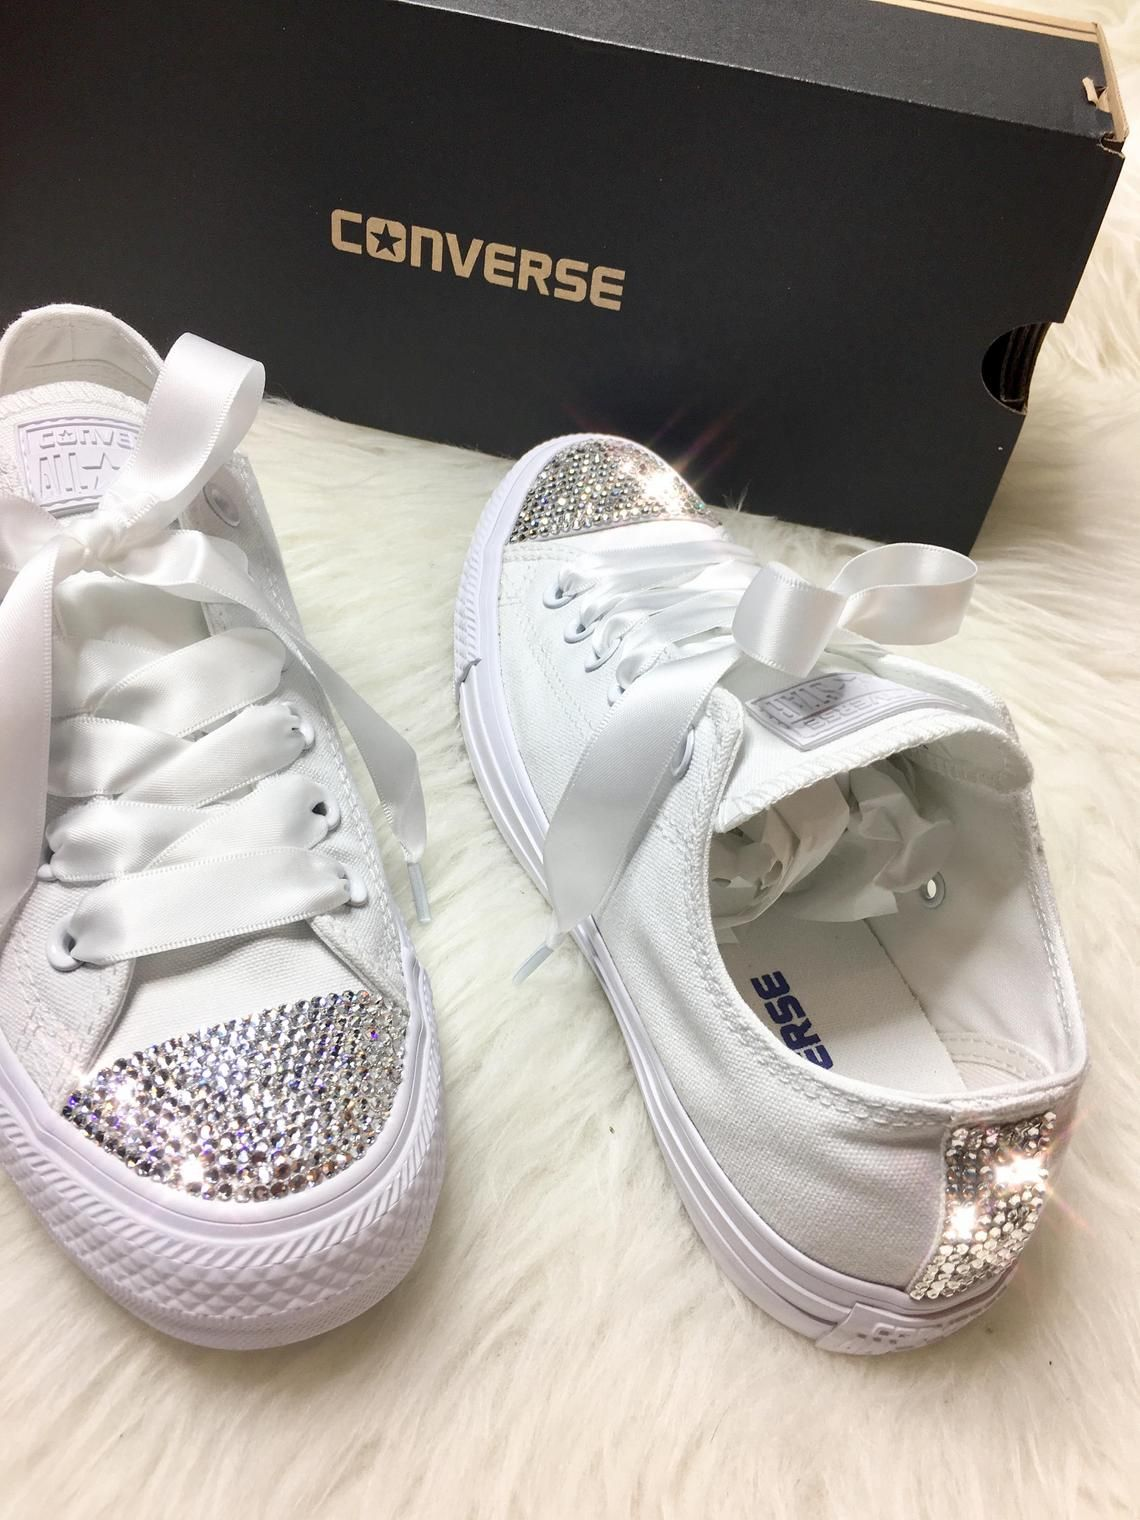 43a37f50be07 Swarovski Crystal CONVERSE Bling Women s Wedding crystal sneakers